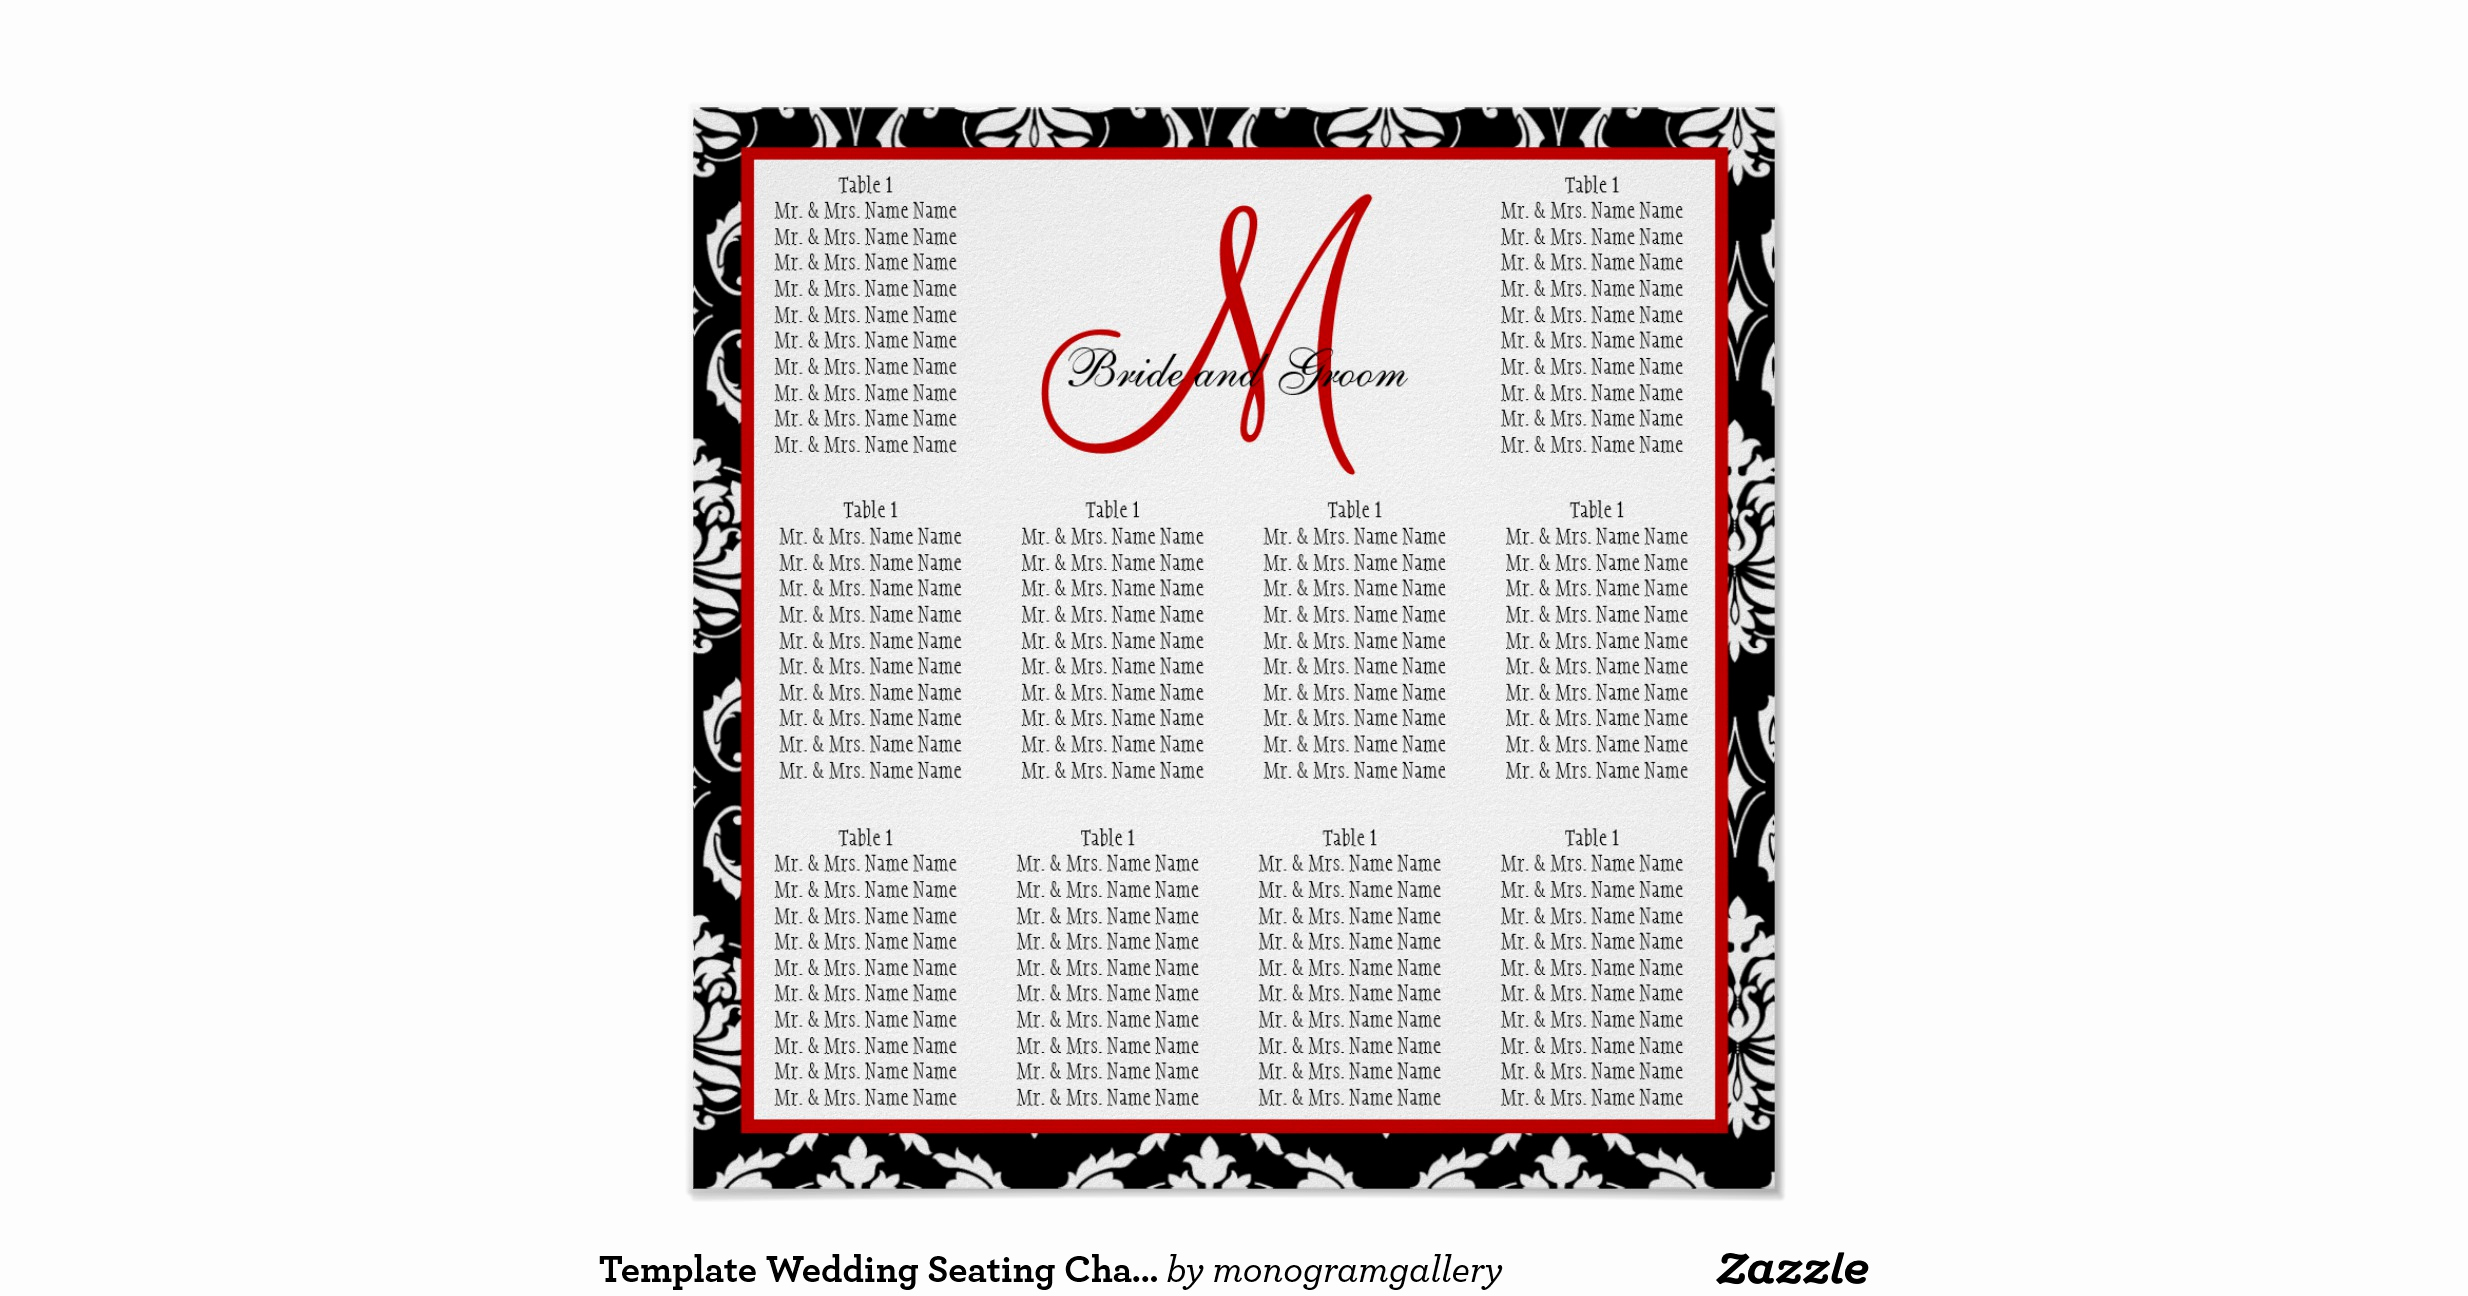 Wedding Seating Chart Poster Template Fresh Template Wedding Seating Chart Damask Red Poster